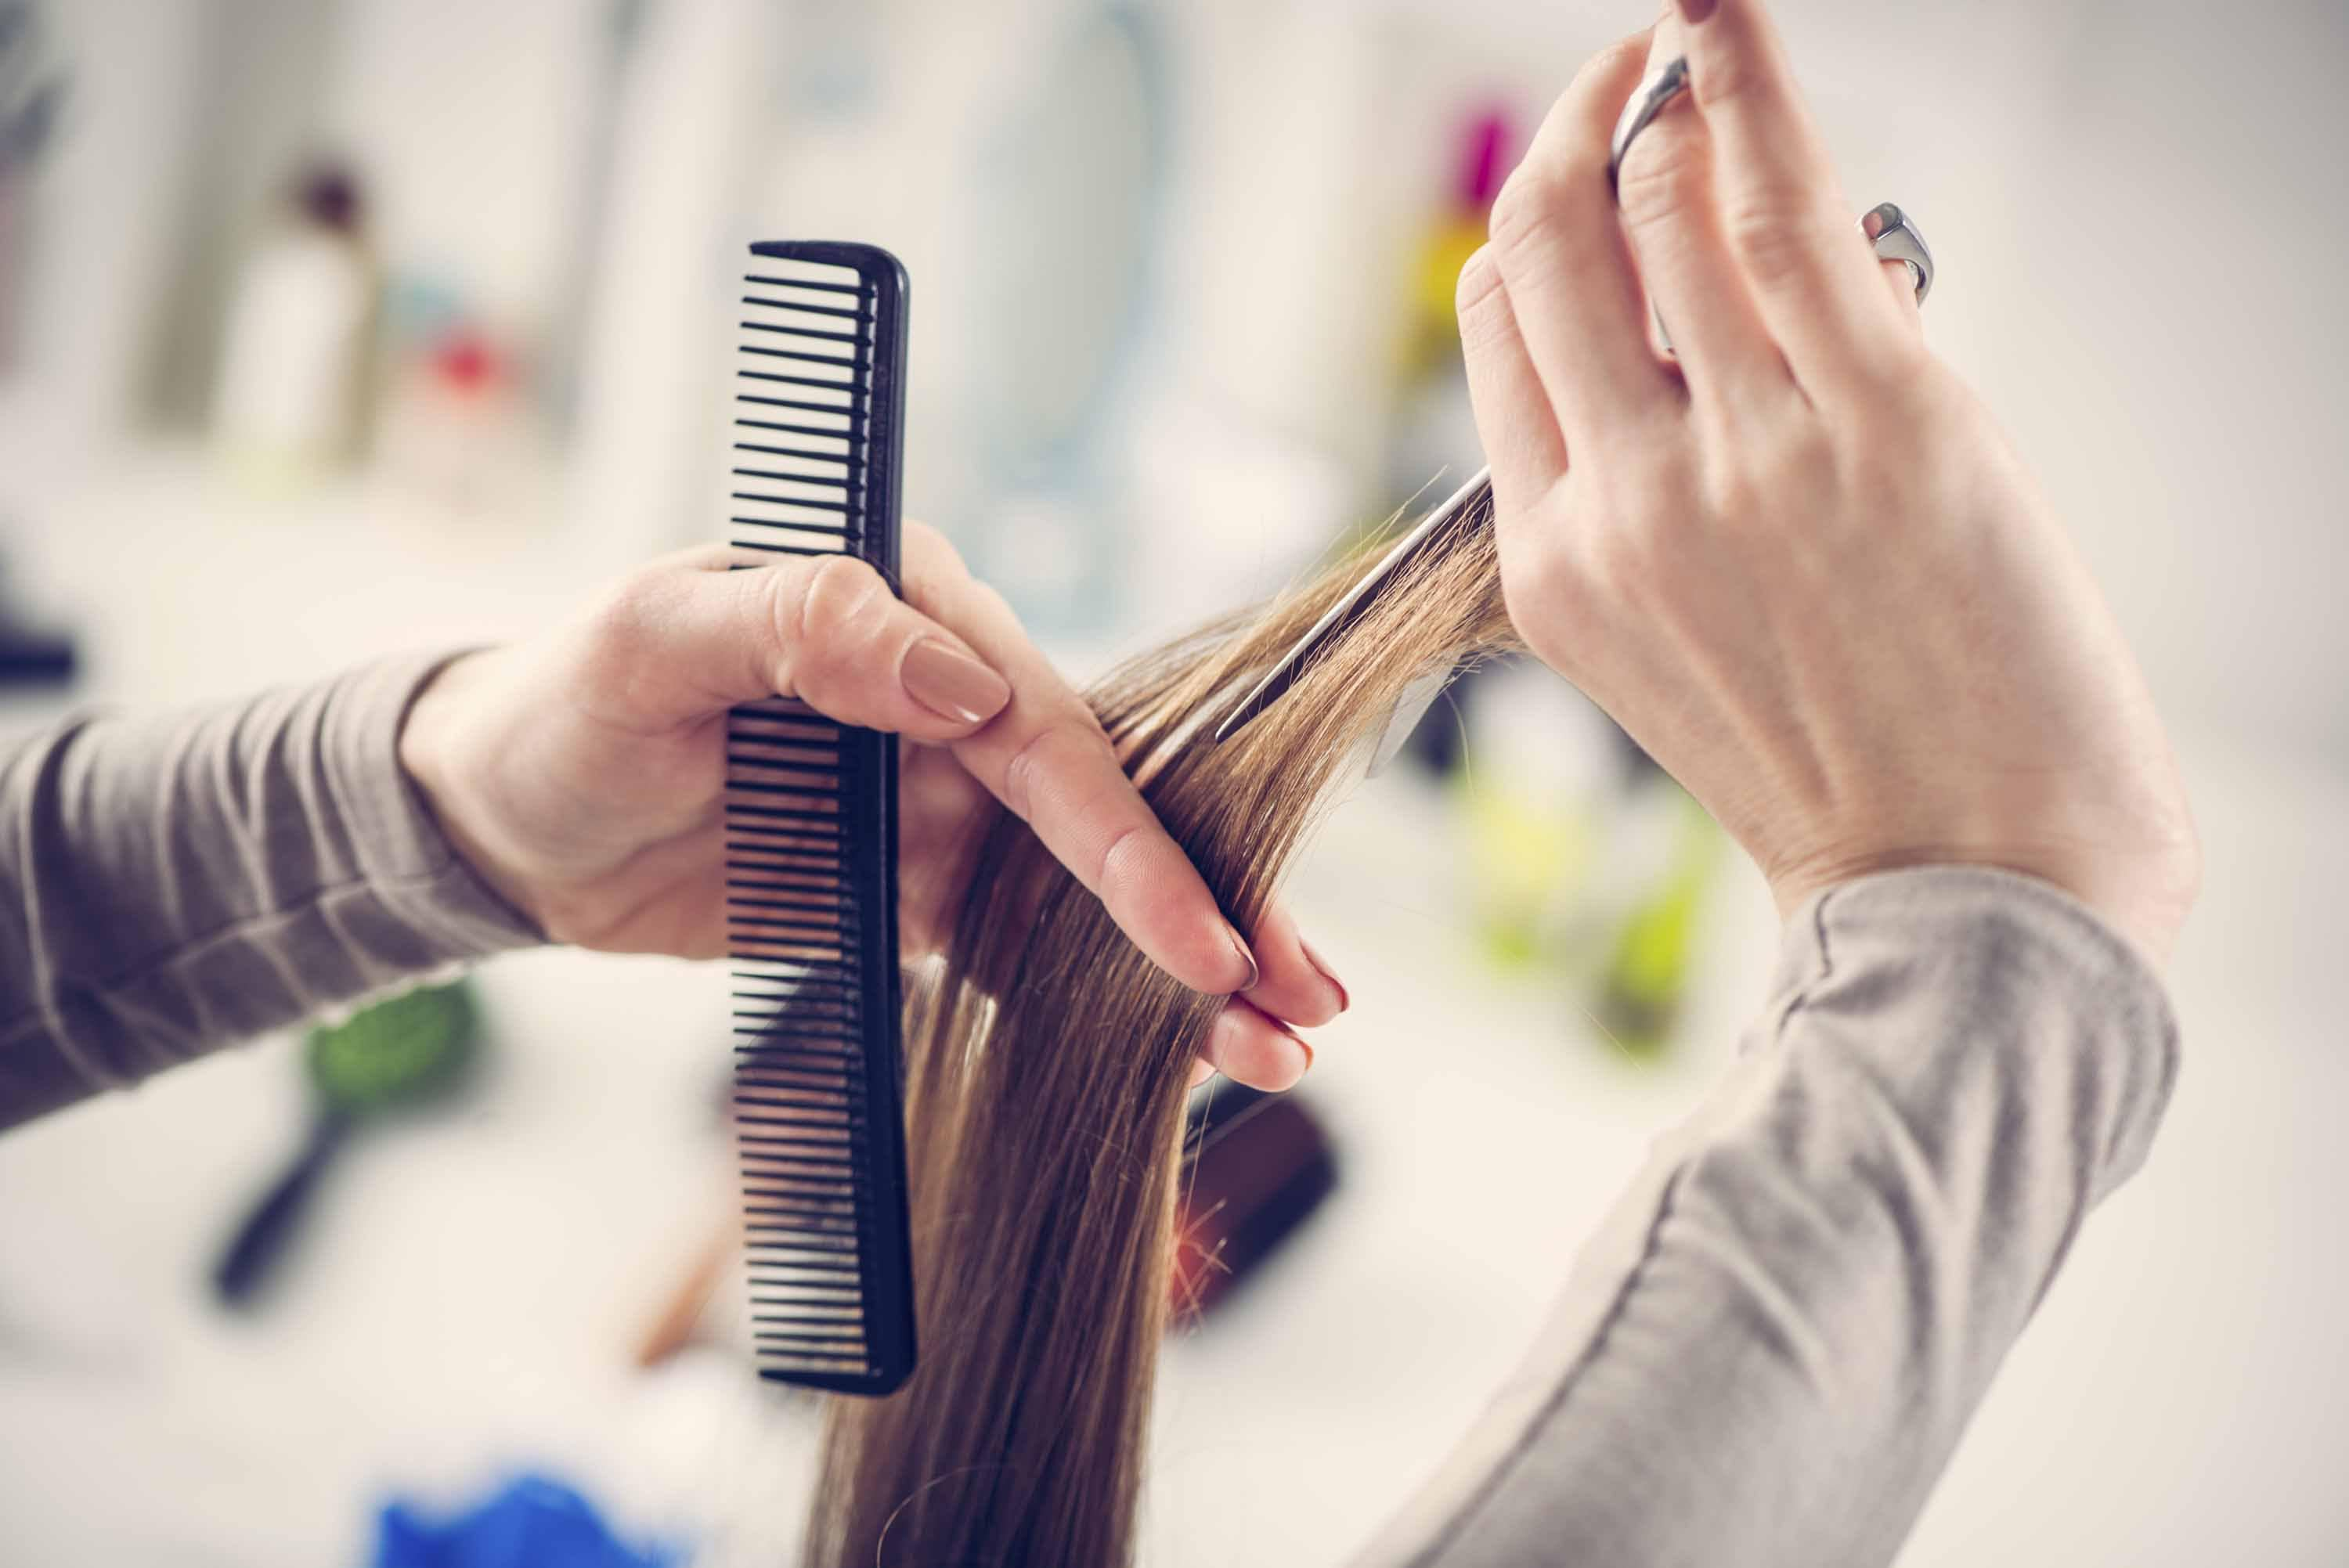 New Years resolutions: All Things Hair - IMAGE - healthy hair tips haircut trim